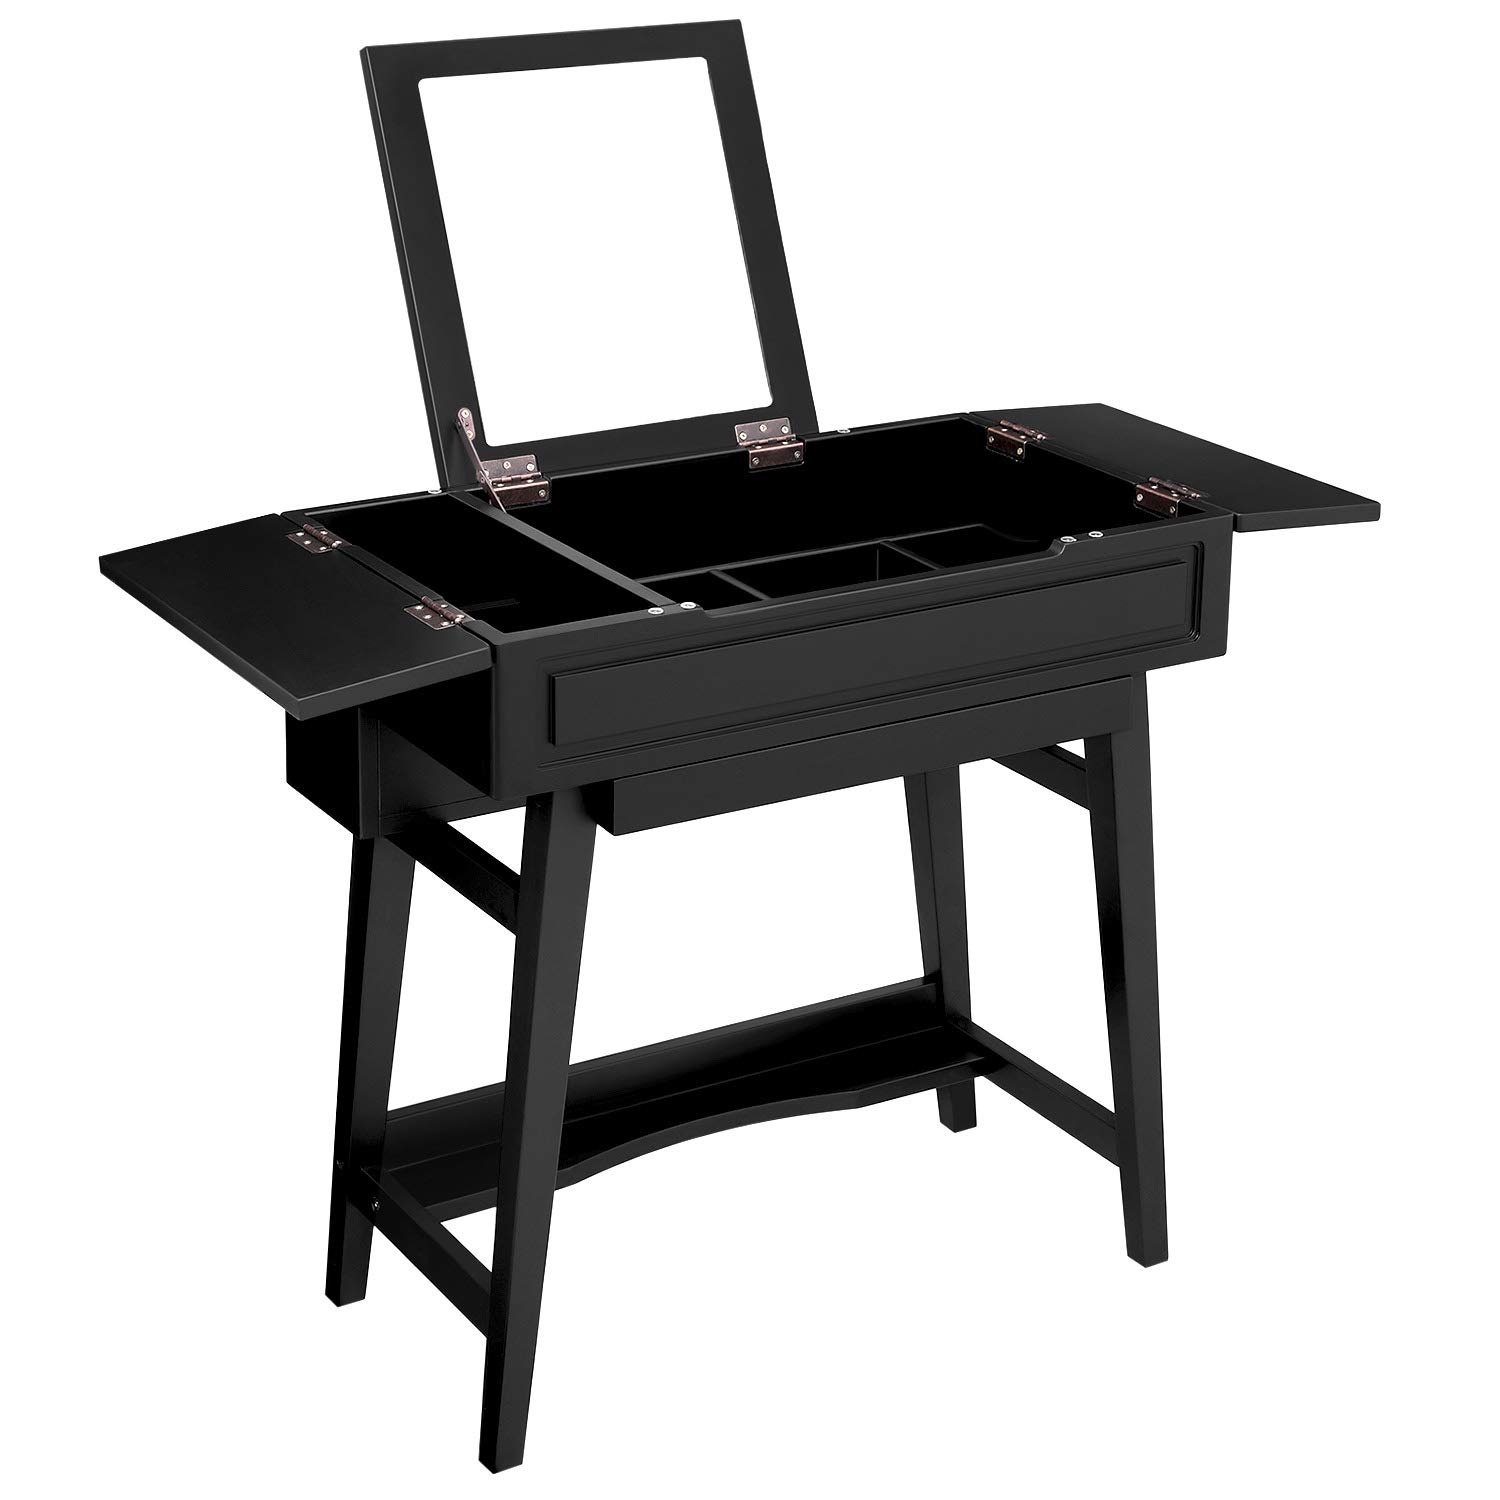 VASAGLE Vanity Table with Flip Top Mirror, Solid Wood Makeup Dressing Table Desk,6 Organizers for Different Sized Makeup Accessories, 1 Small Drawers for Lipsticks, Powders, Black URDT26BK